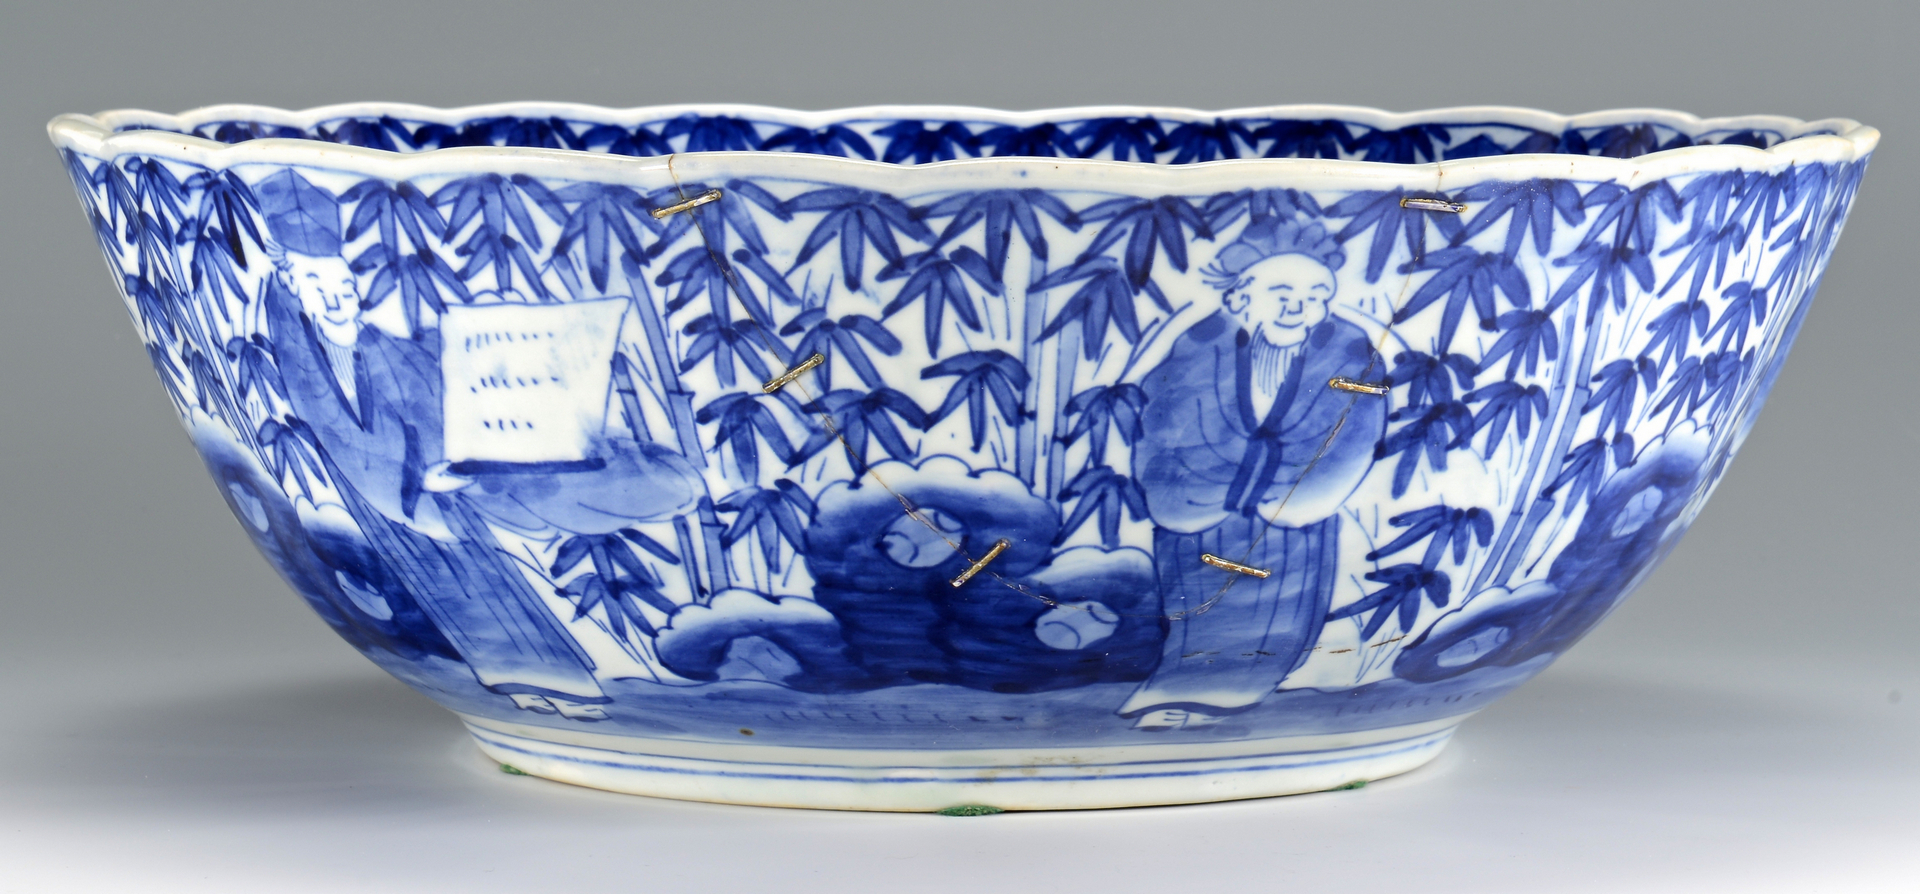 Lot 716 Chinese Blue And White Punch Bowl 19th C